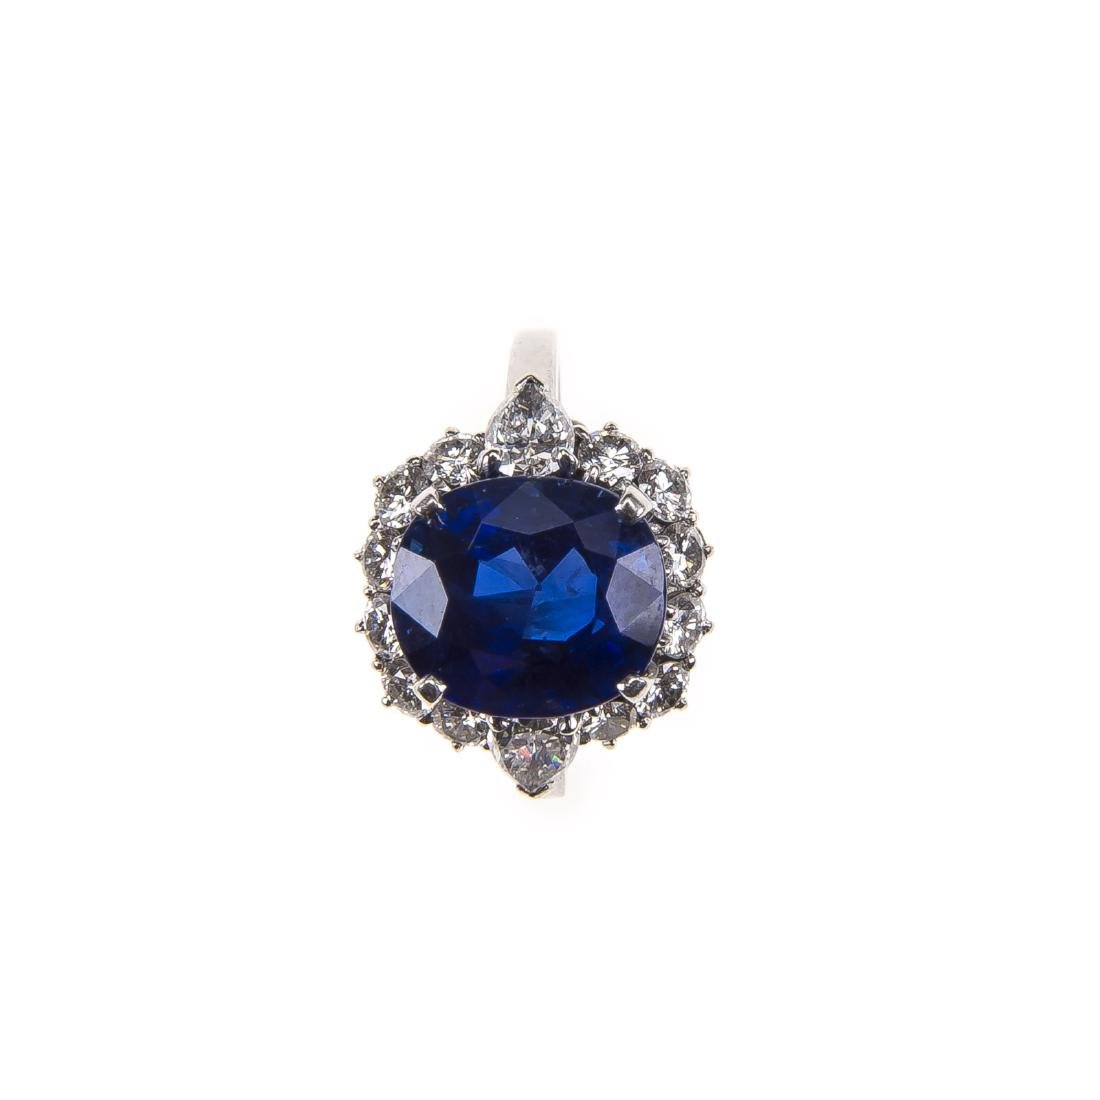 A sapphire and diamond ring by Bulgari